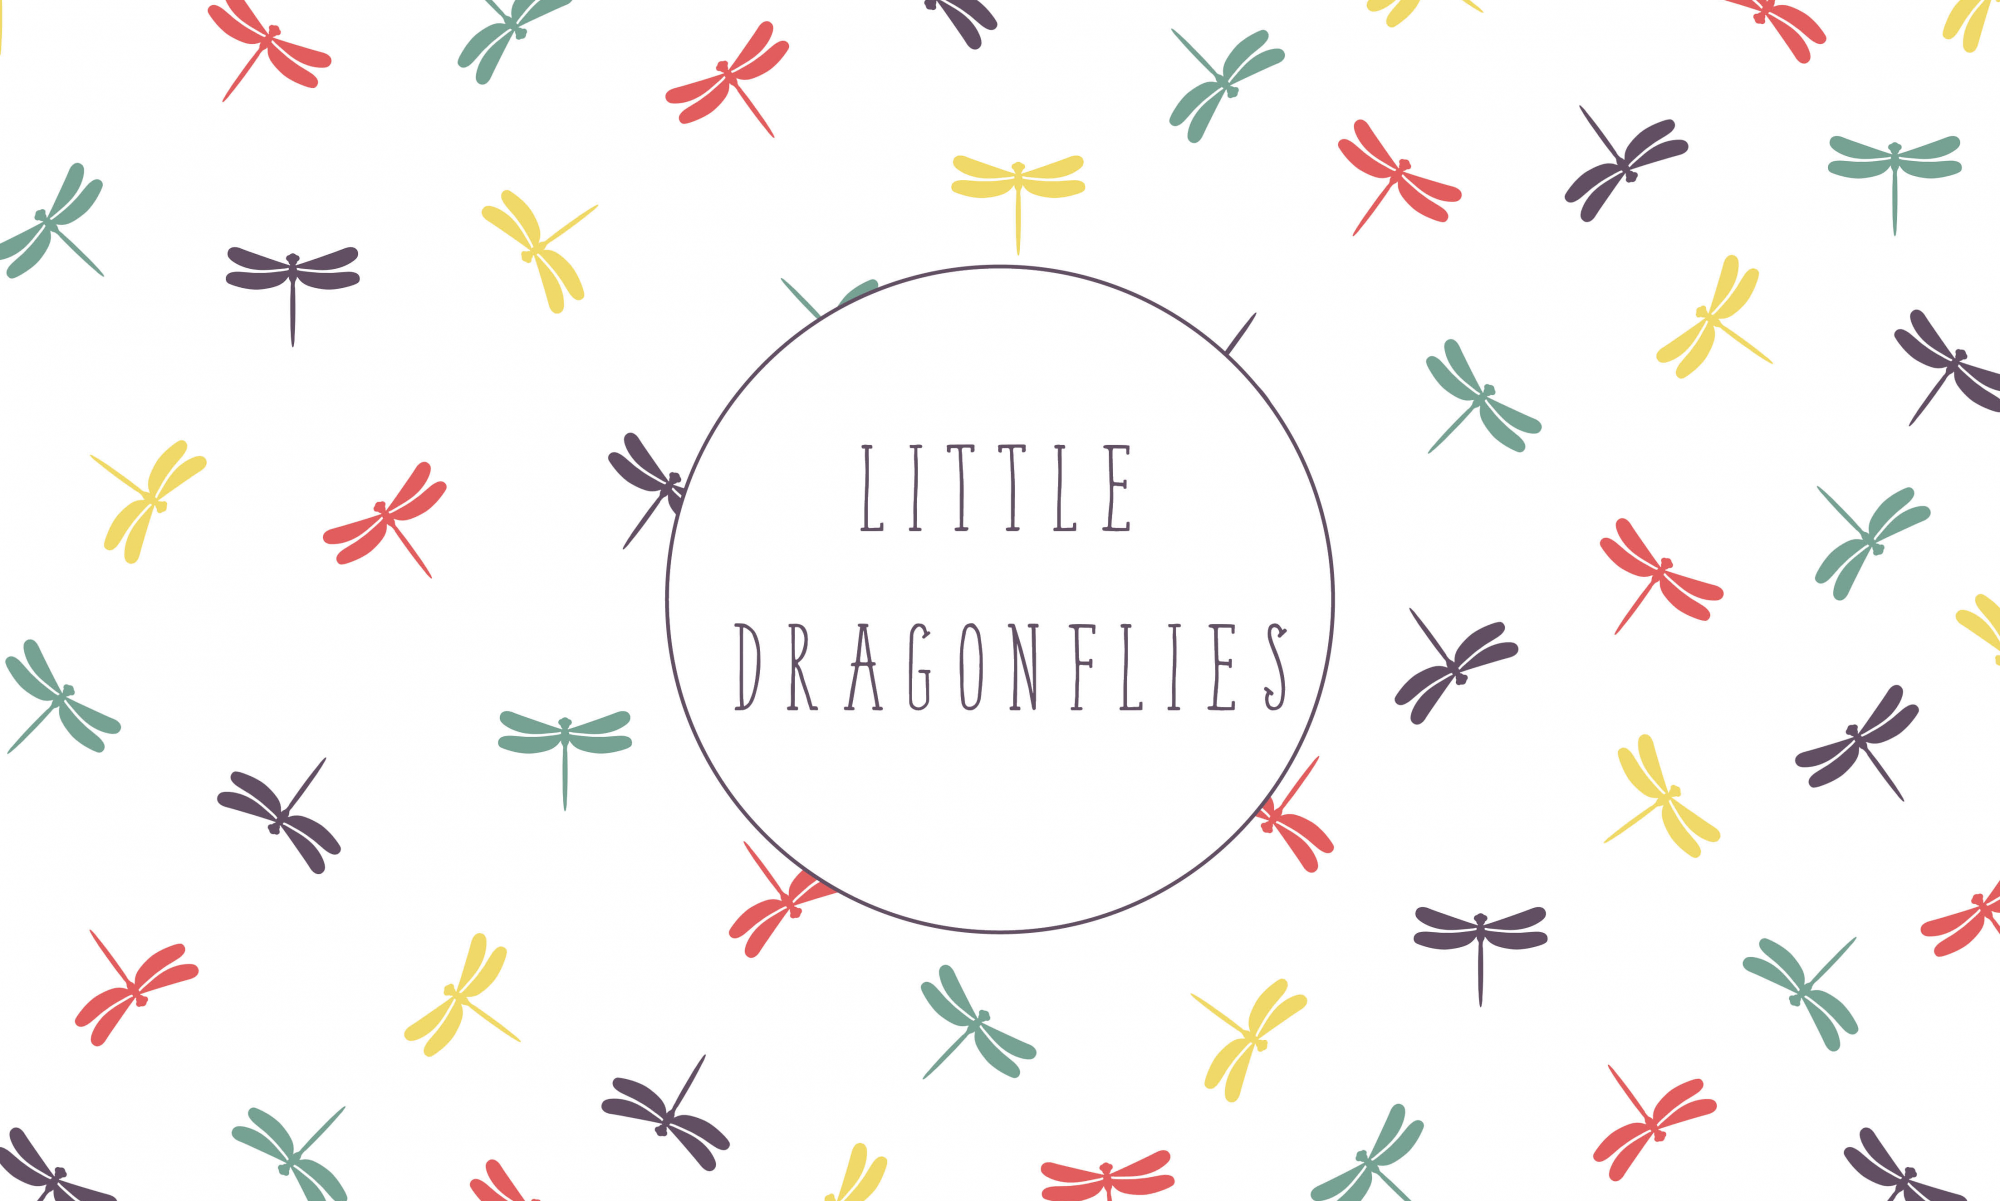 Little Dragonflies Childcare